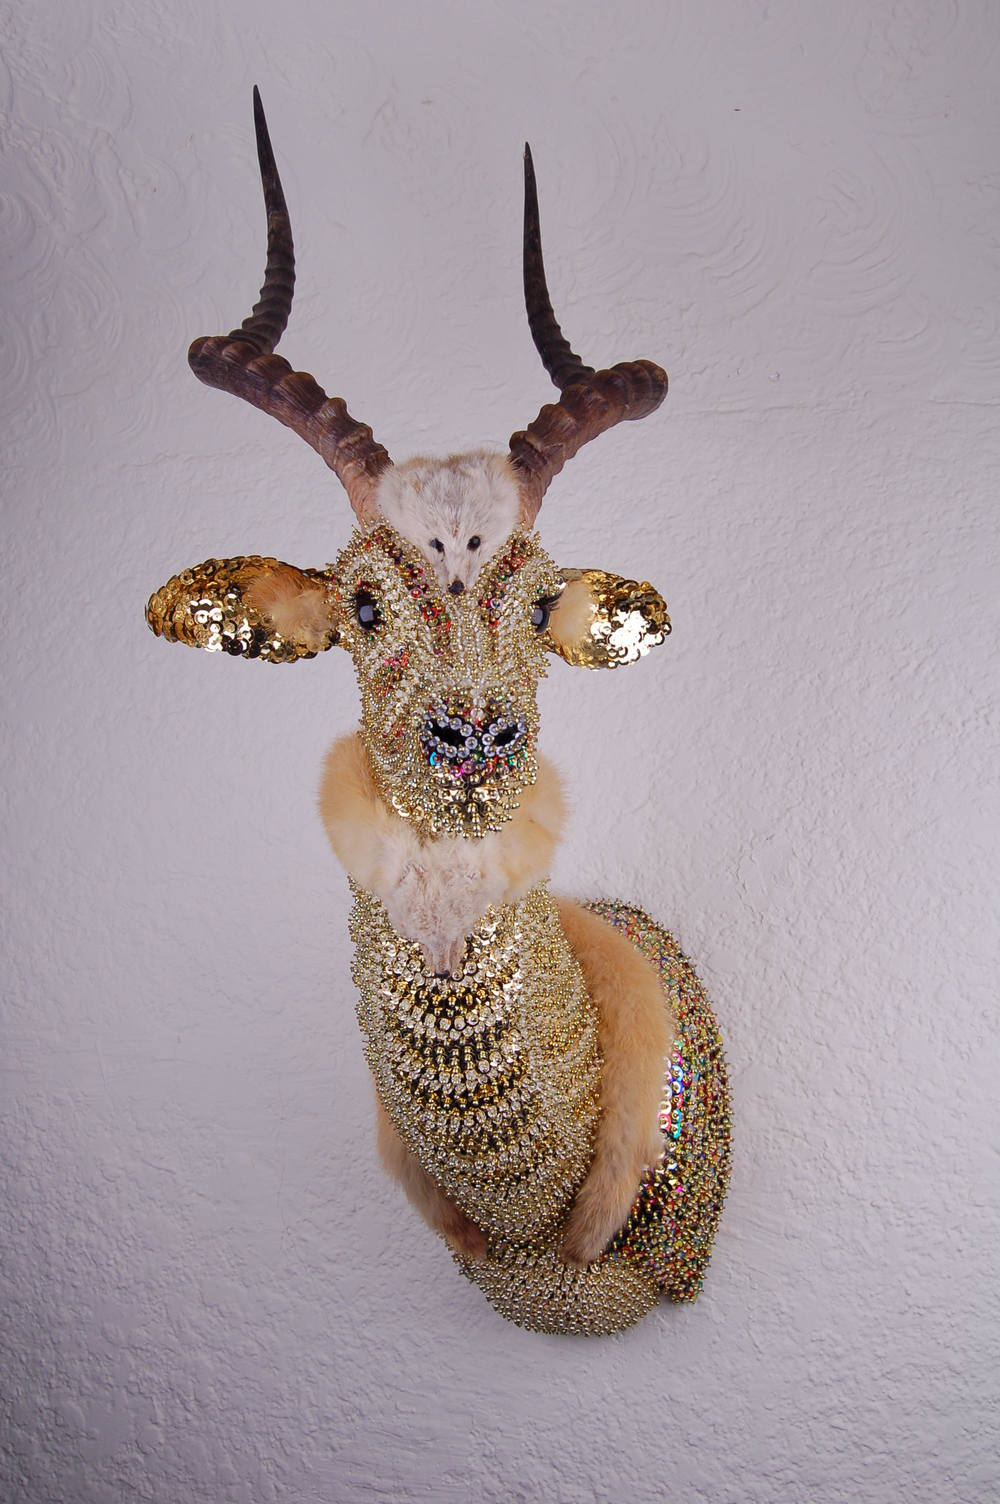 Impala  polyurethane foam, antlers, sequins, mink, beads, and pins, 2016